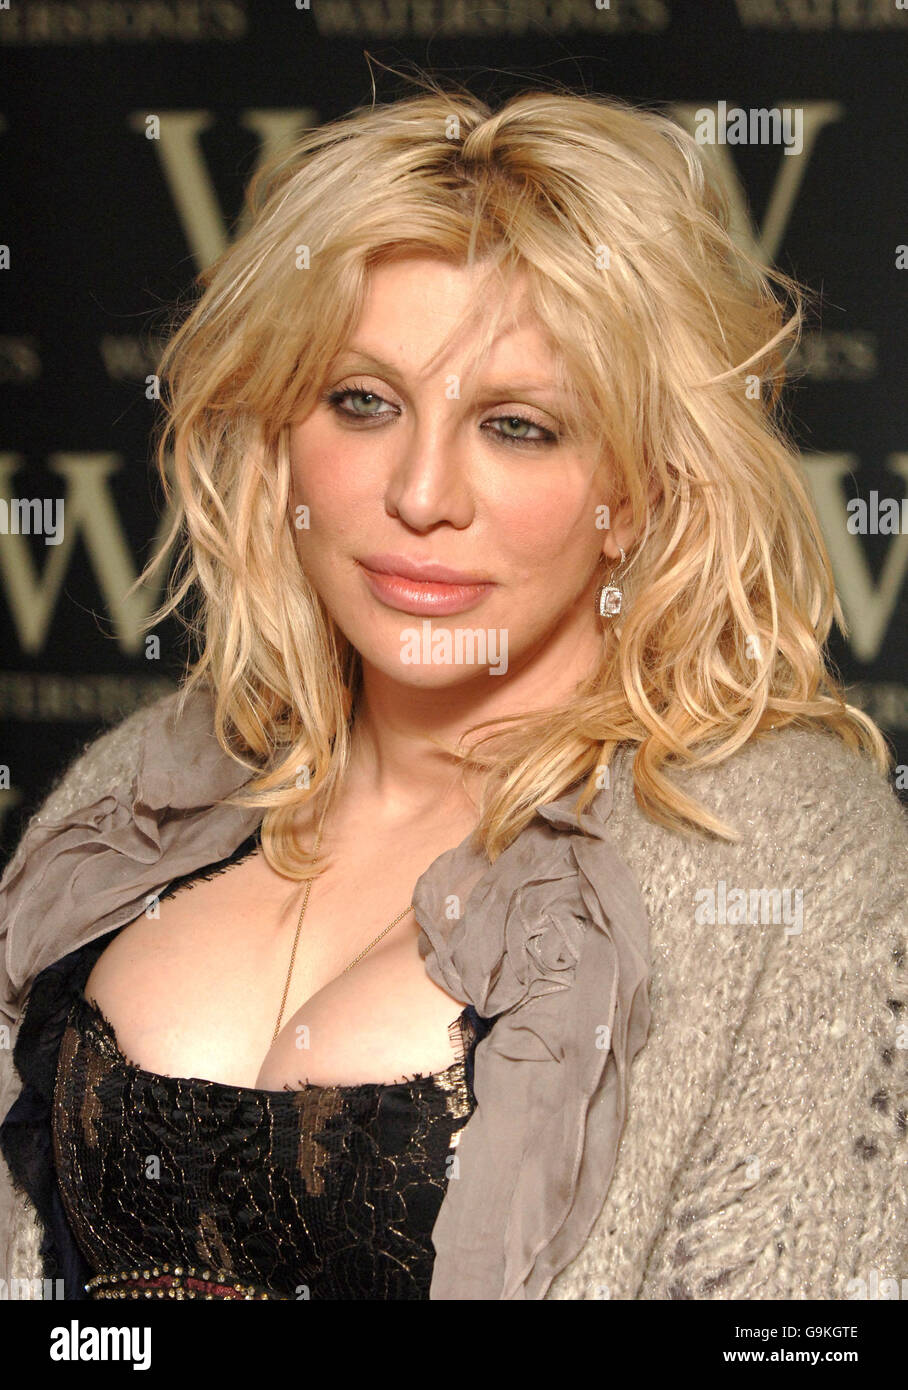 Cleavage Courtney Love nudes (98 photos), Ass, Paparazzi, Feet, lingerie 2015